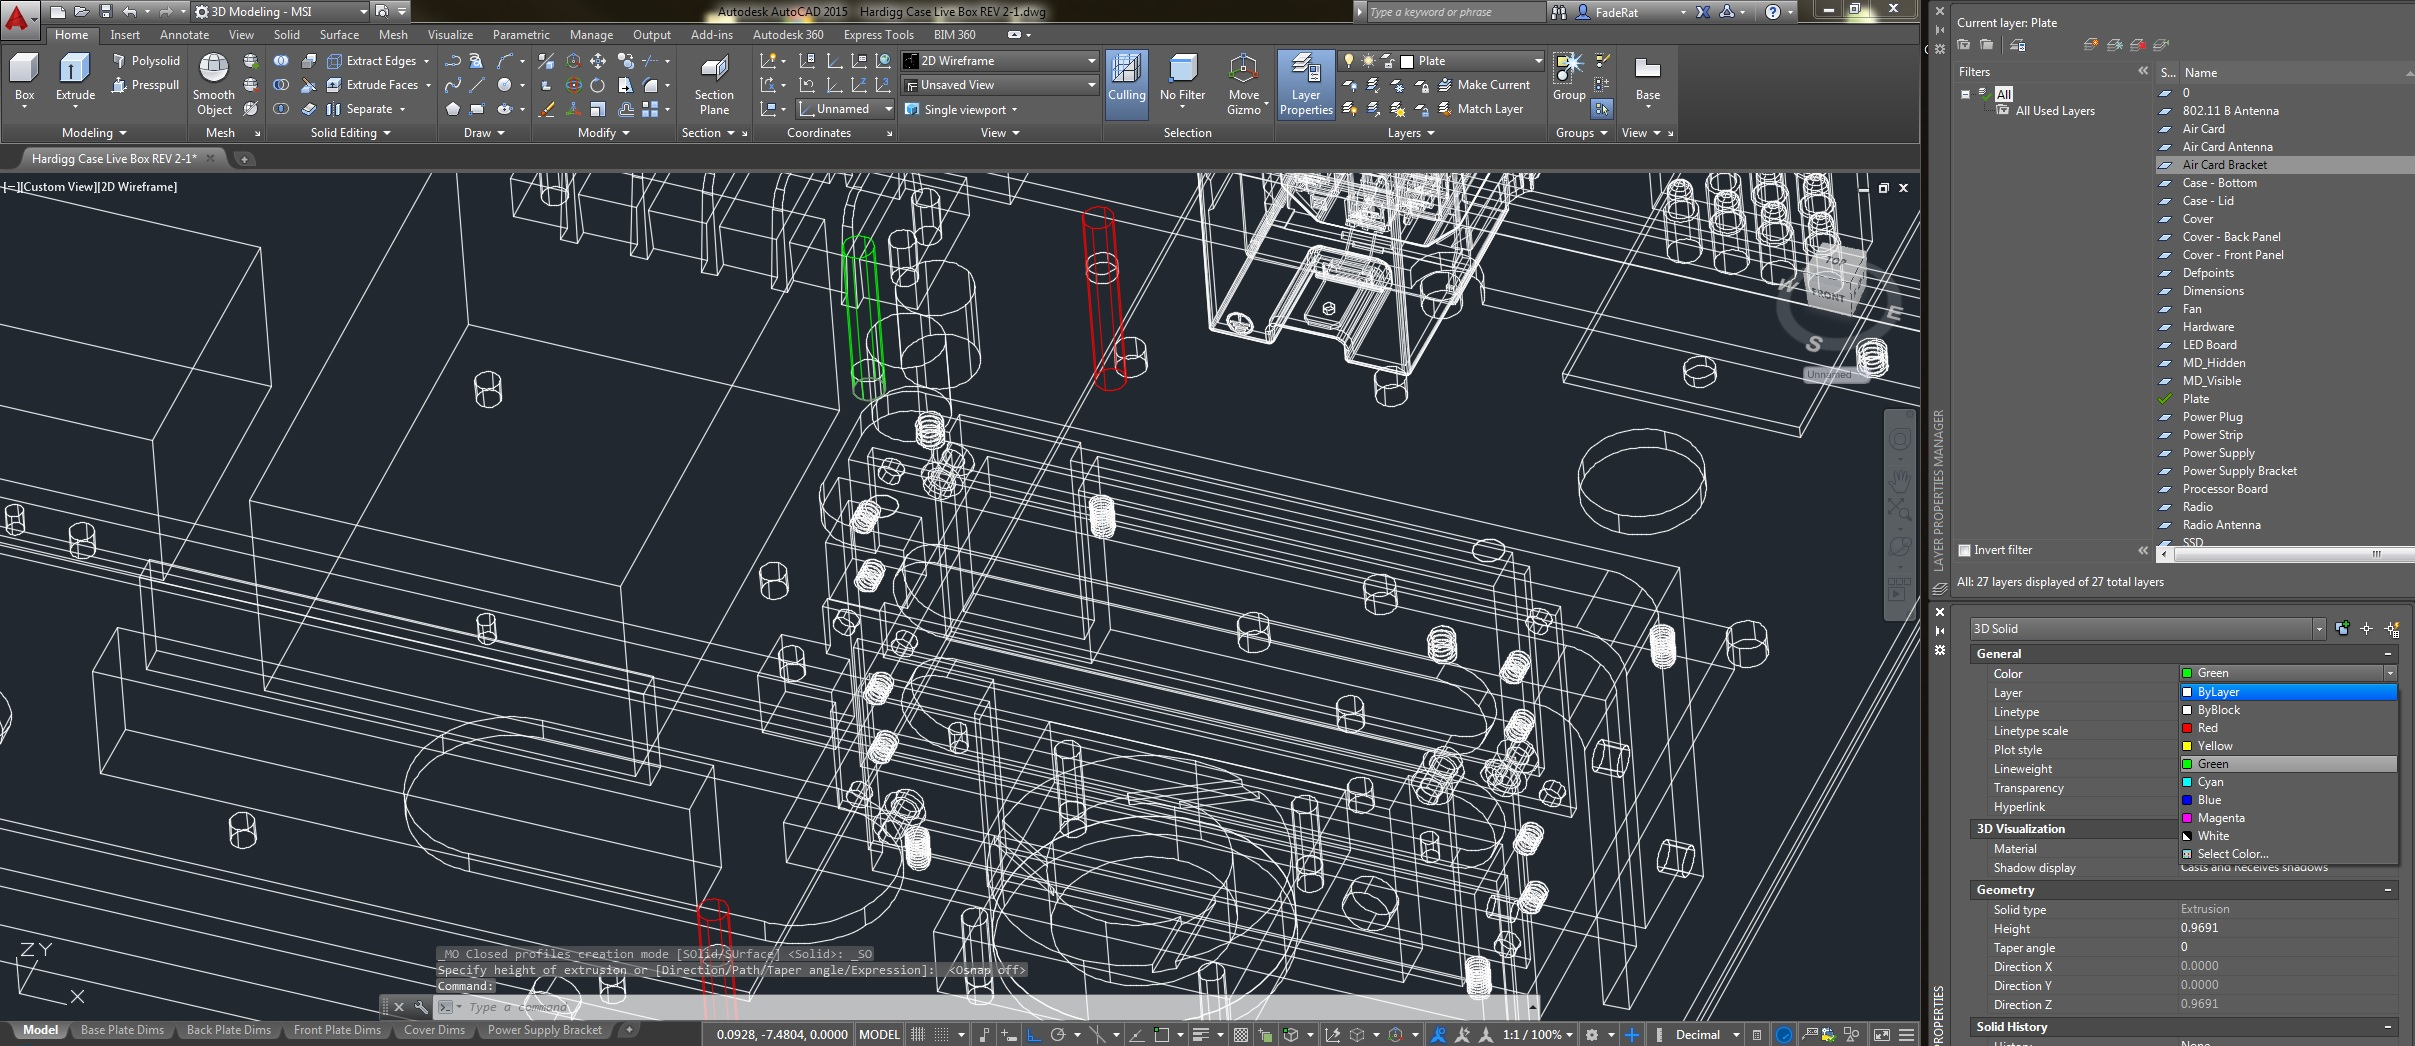 free download autocad software for windows 7 full version